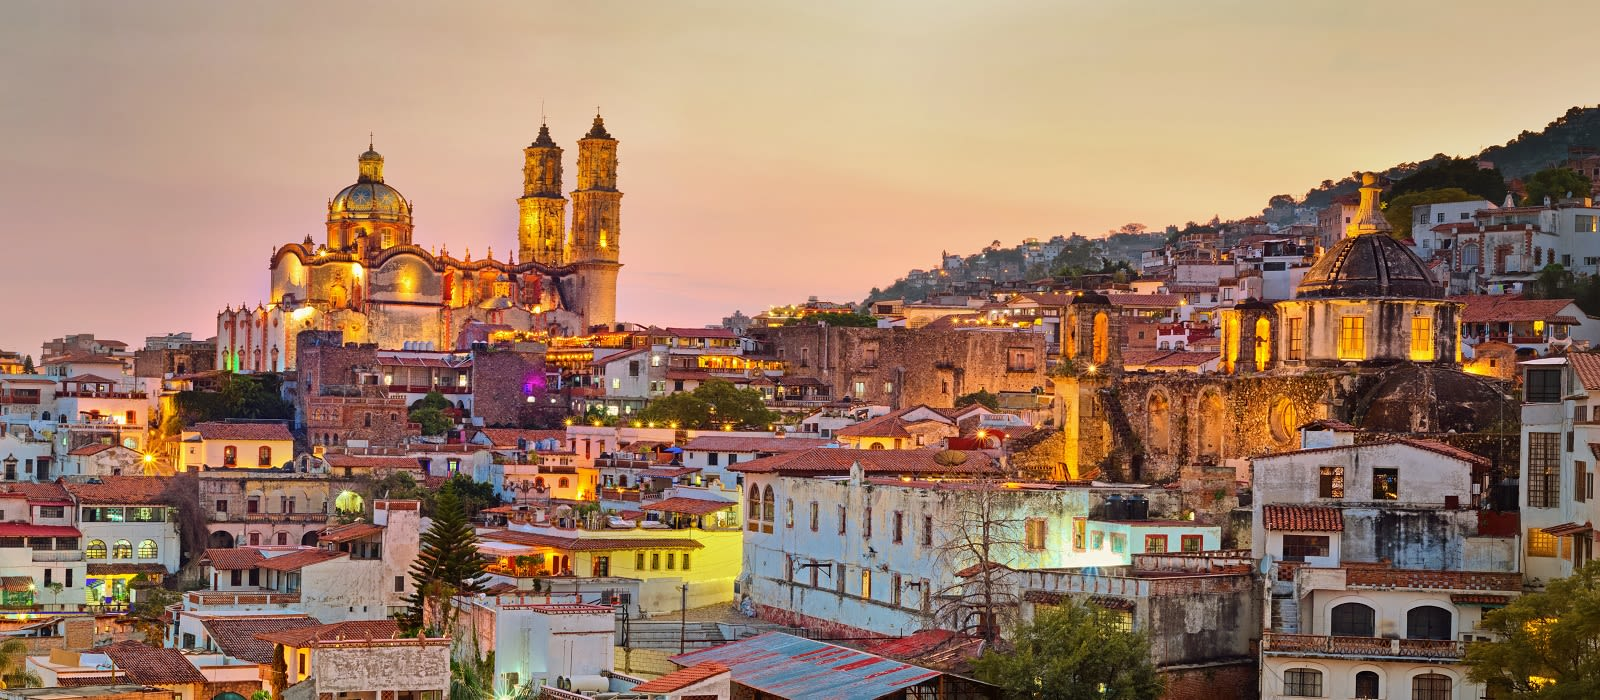 Enchanting Travels Mexico Tours Panorama of Taxco city at sunset in Mexico - things to do in Mexico - Mexico holiday